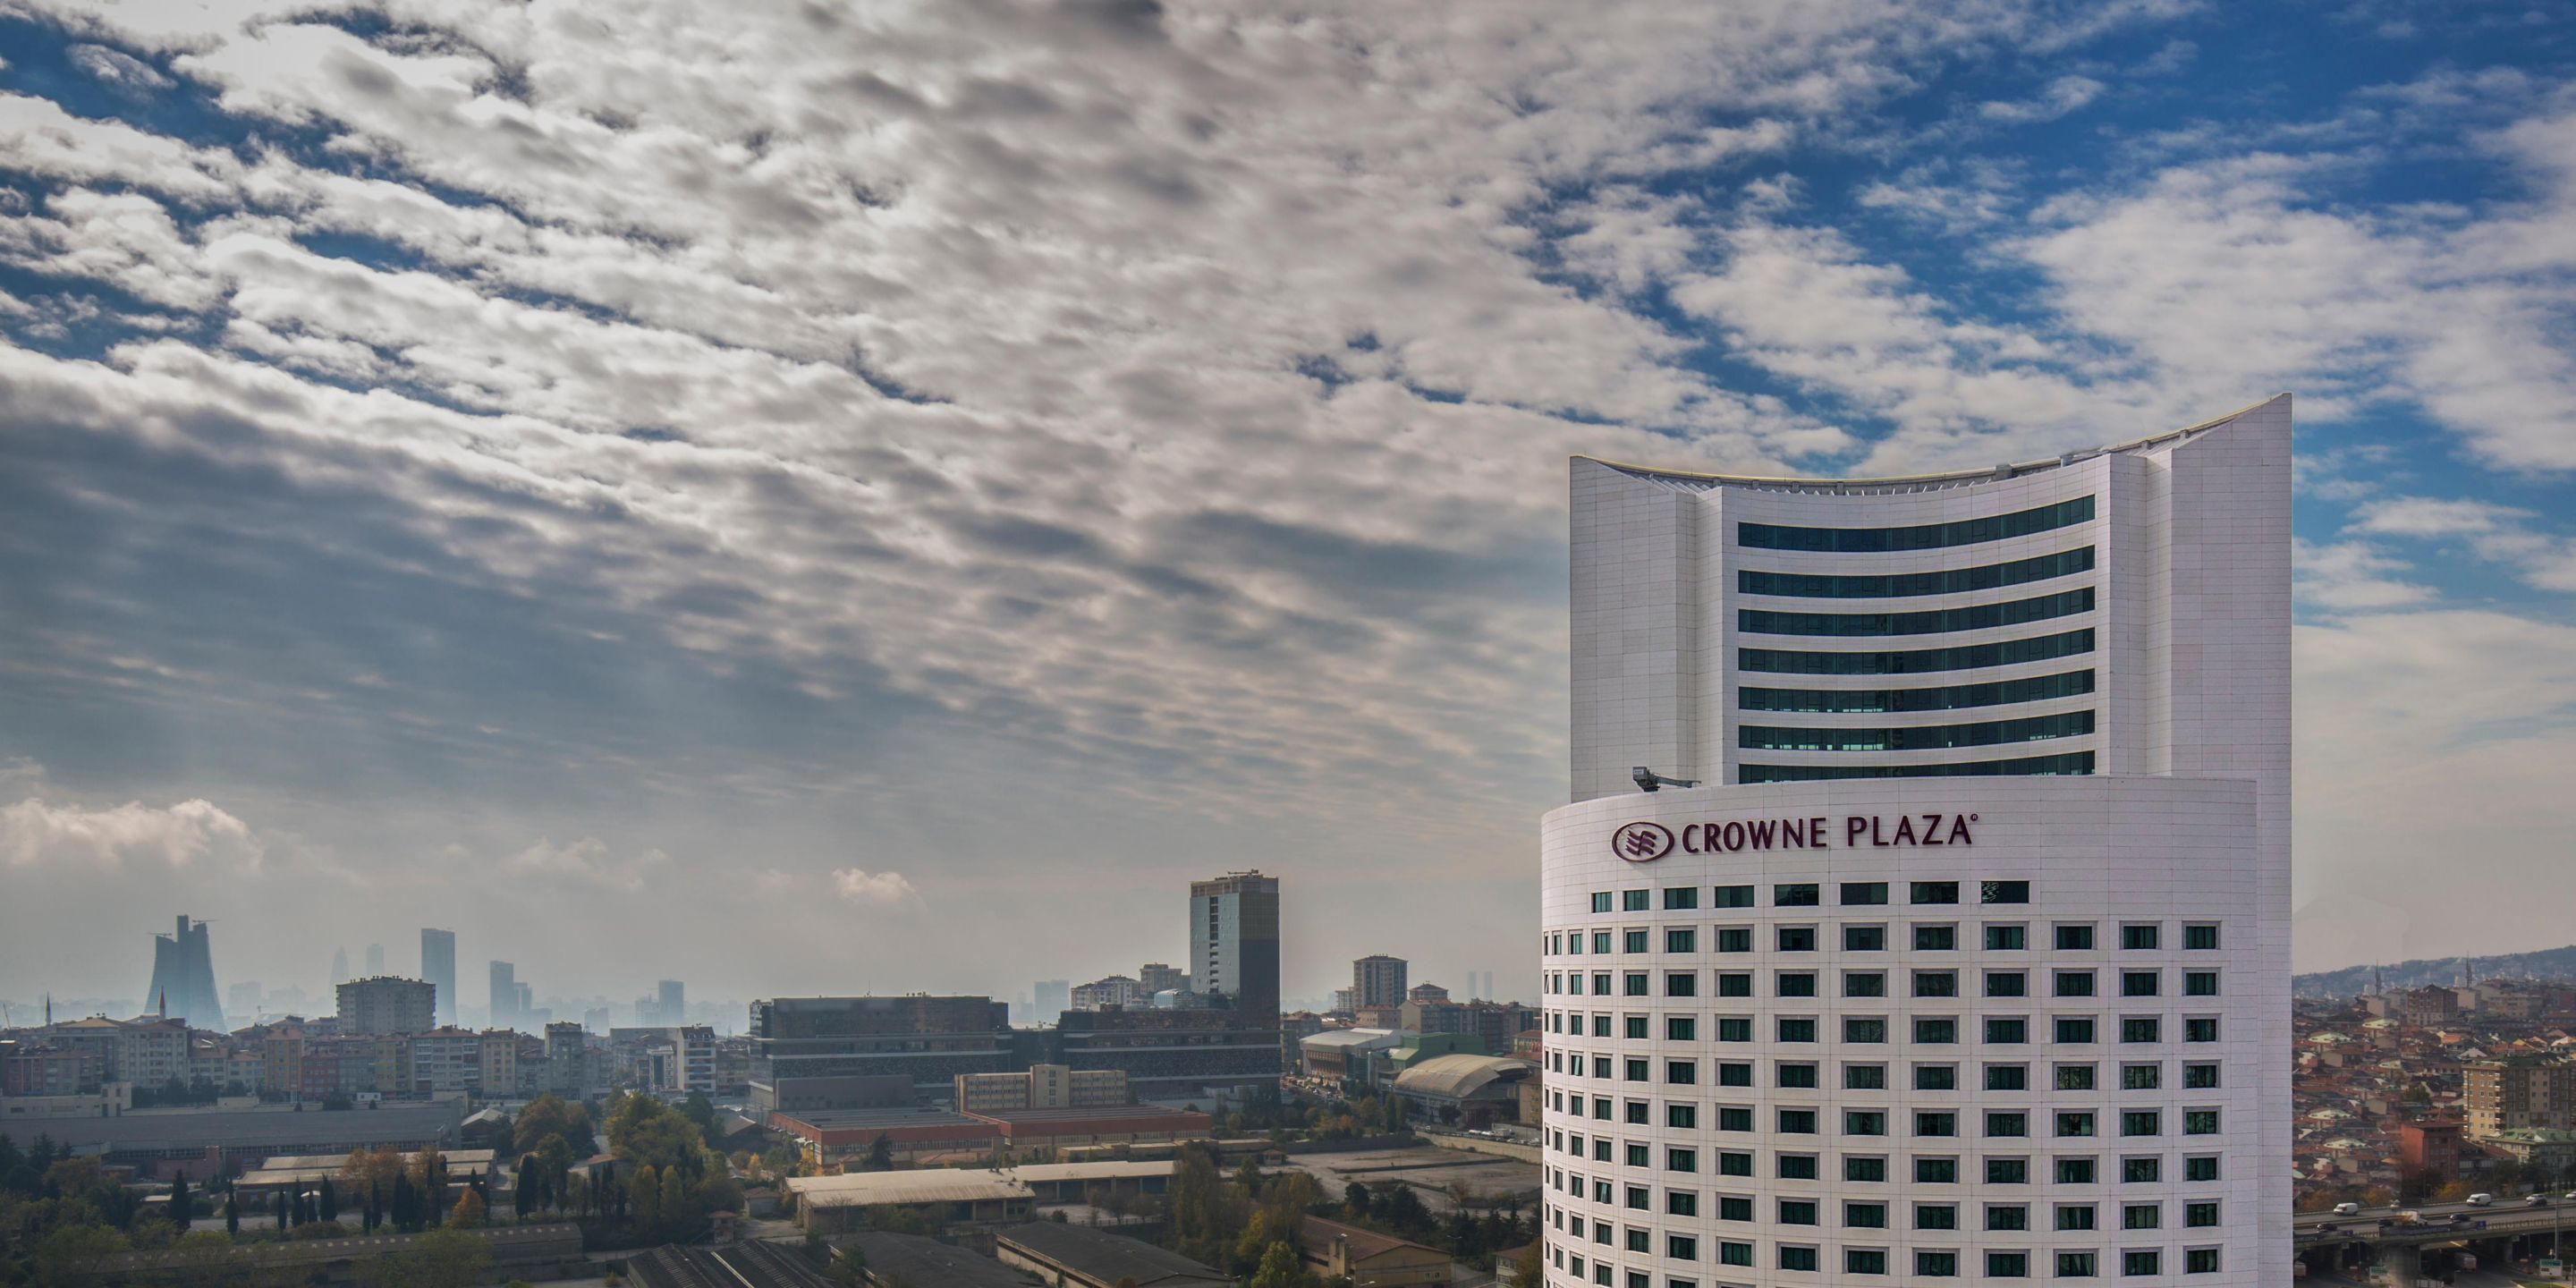 CROWNE PLAZA ISTANBUL HOTEL